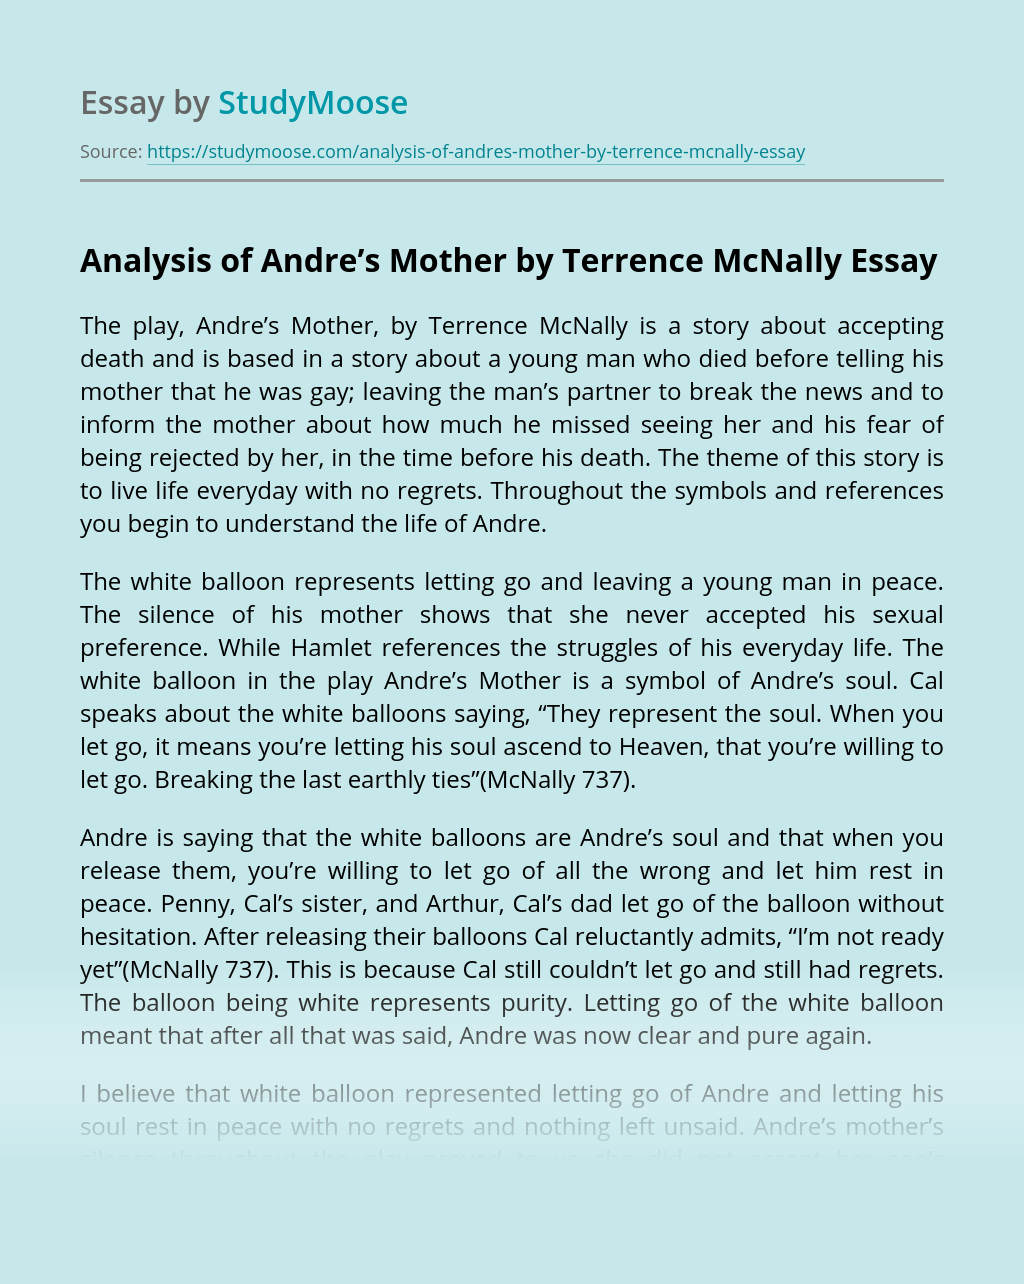 Analysis of Andre's Mother by Terrence McNally